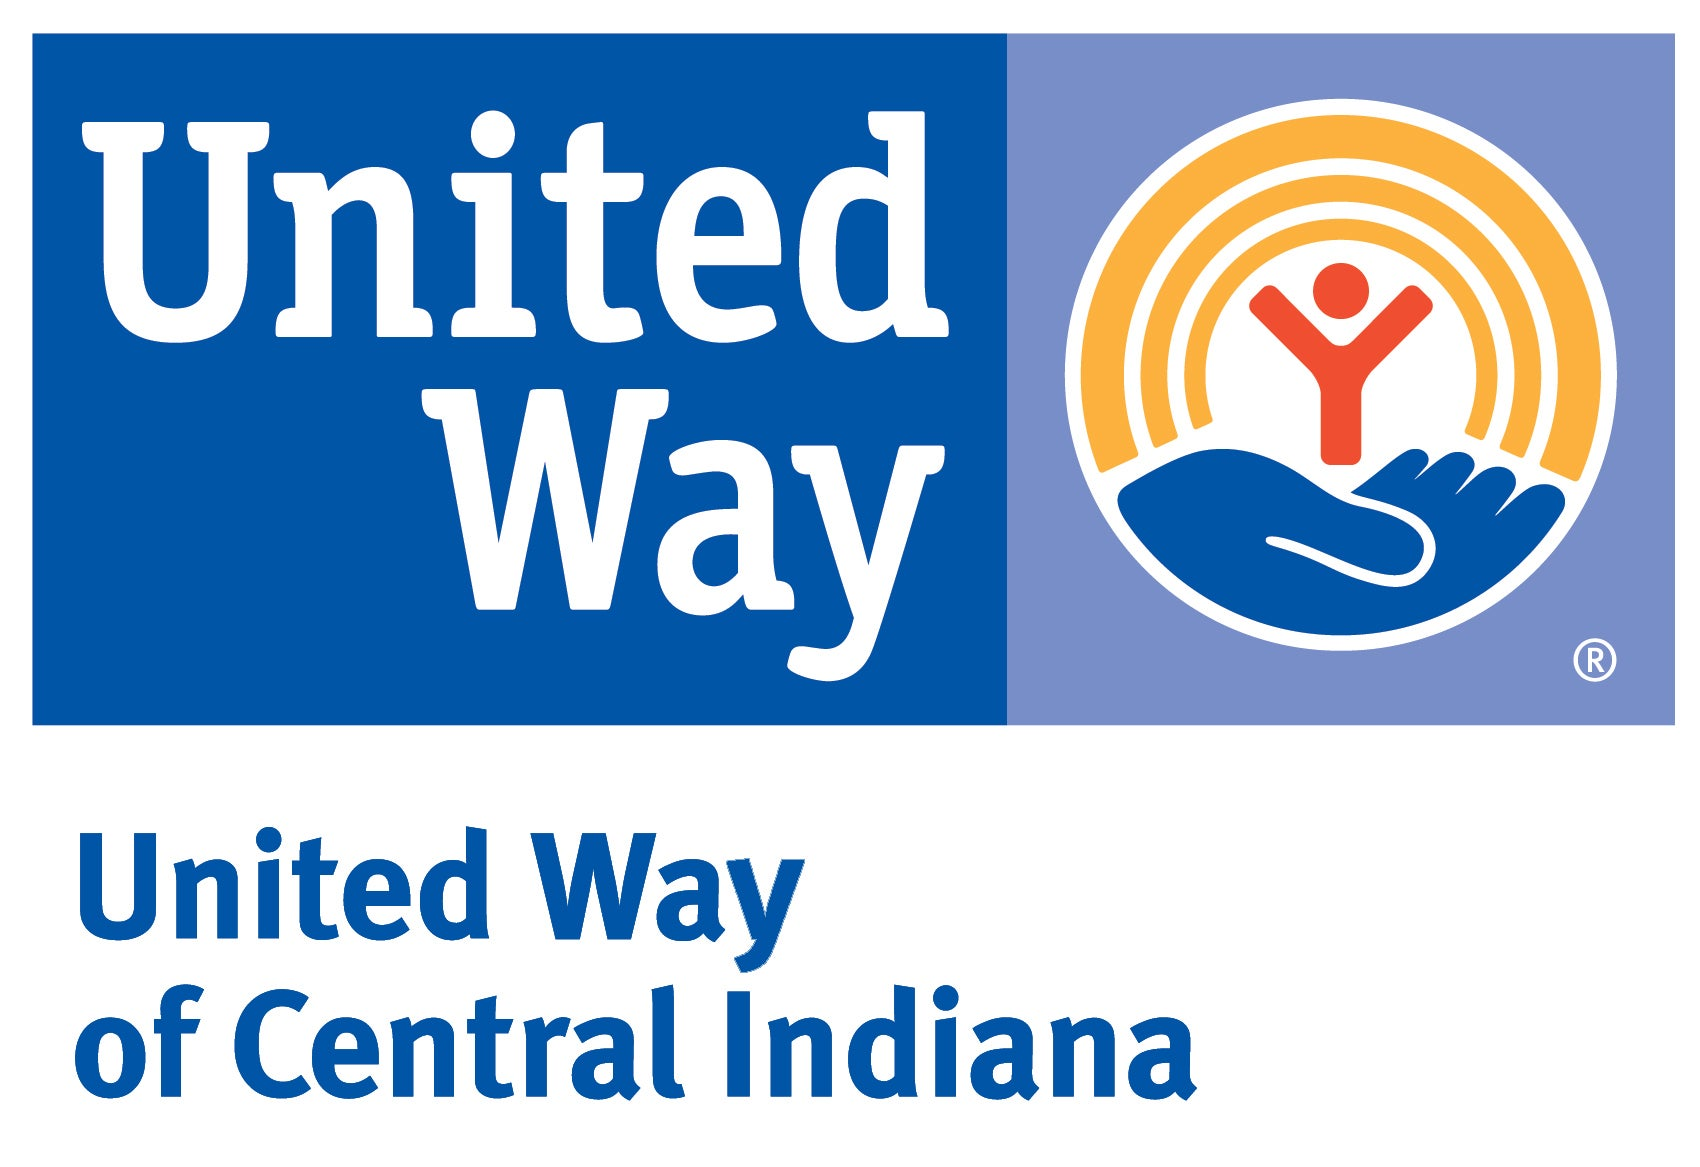 United Way with United Way of Central Indiana